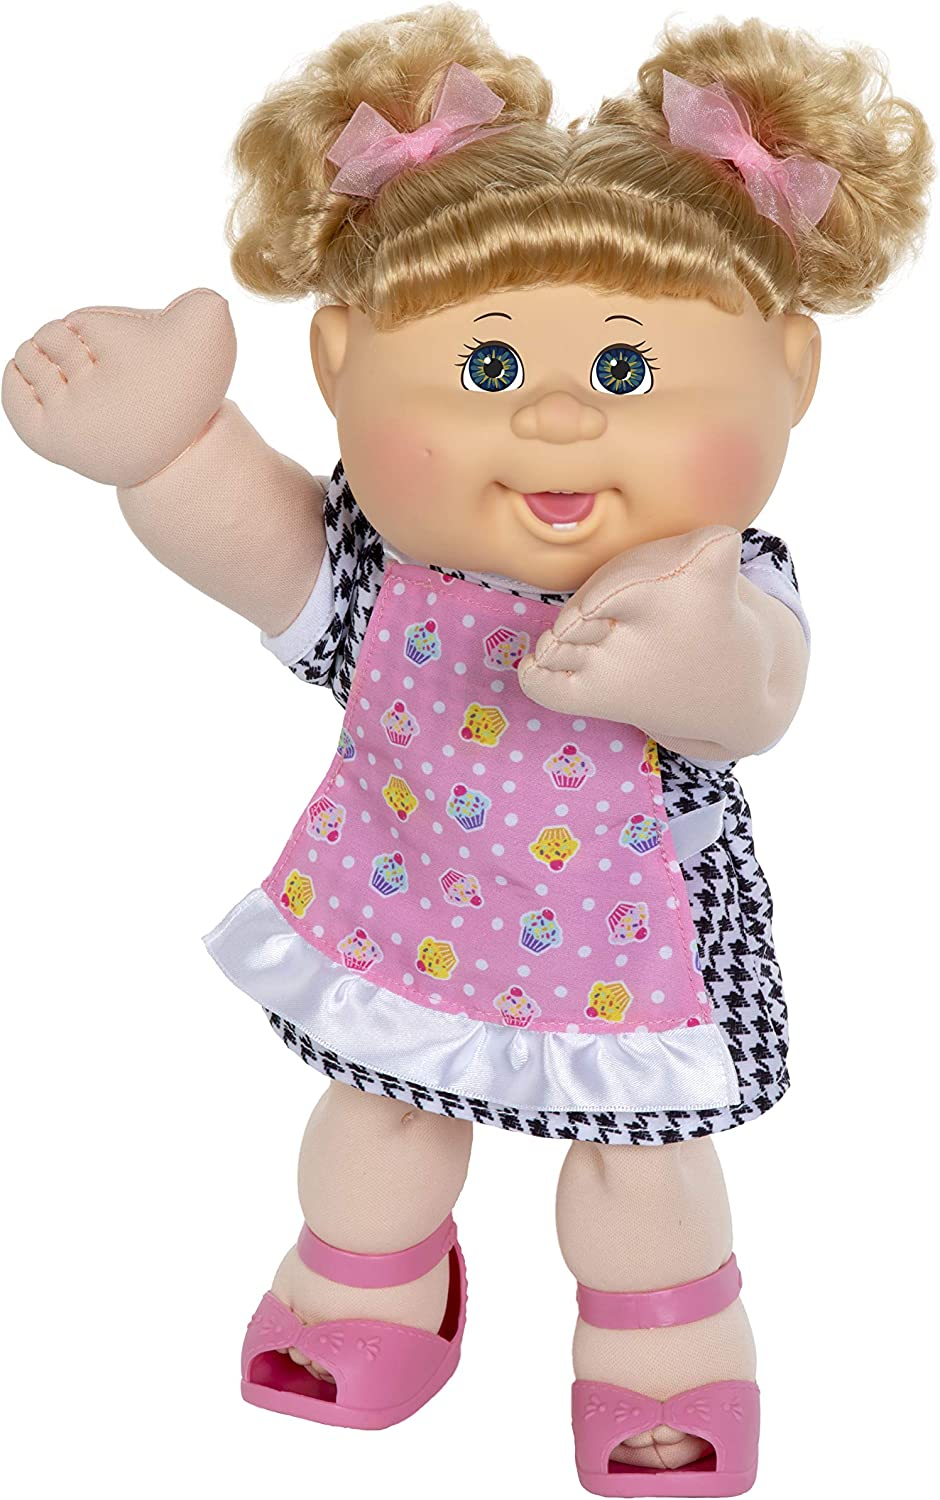 Cabbage Patch Kids CPW0040 Max 87% OFF 14